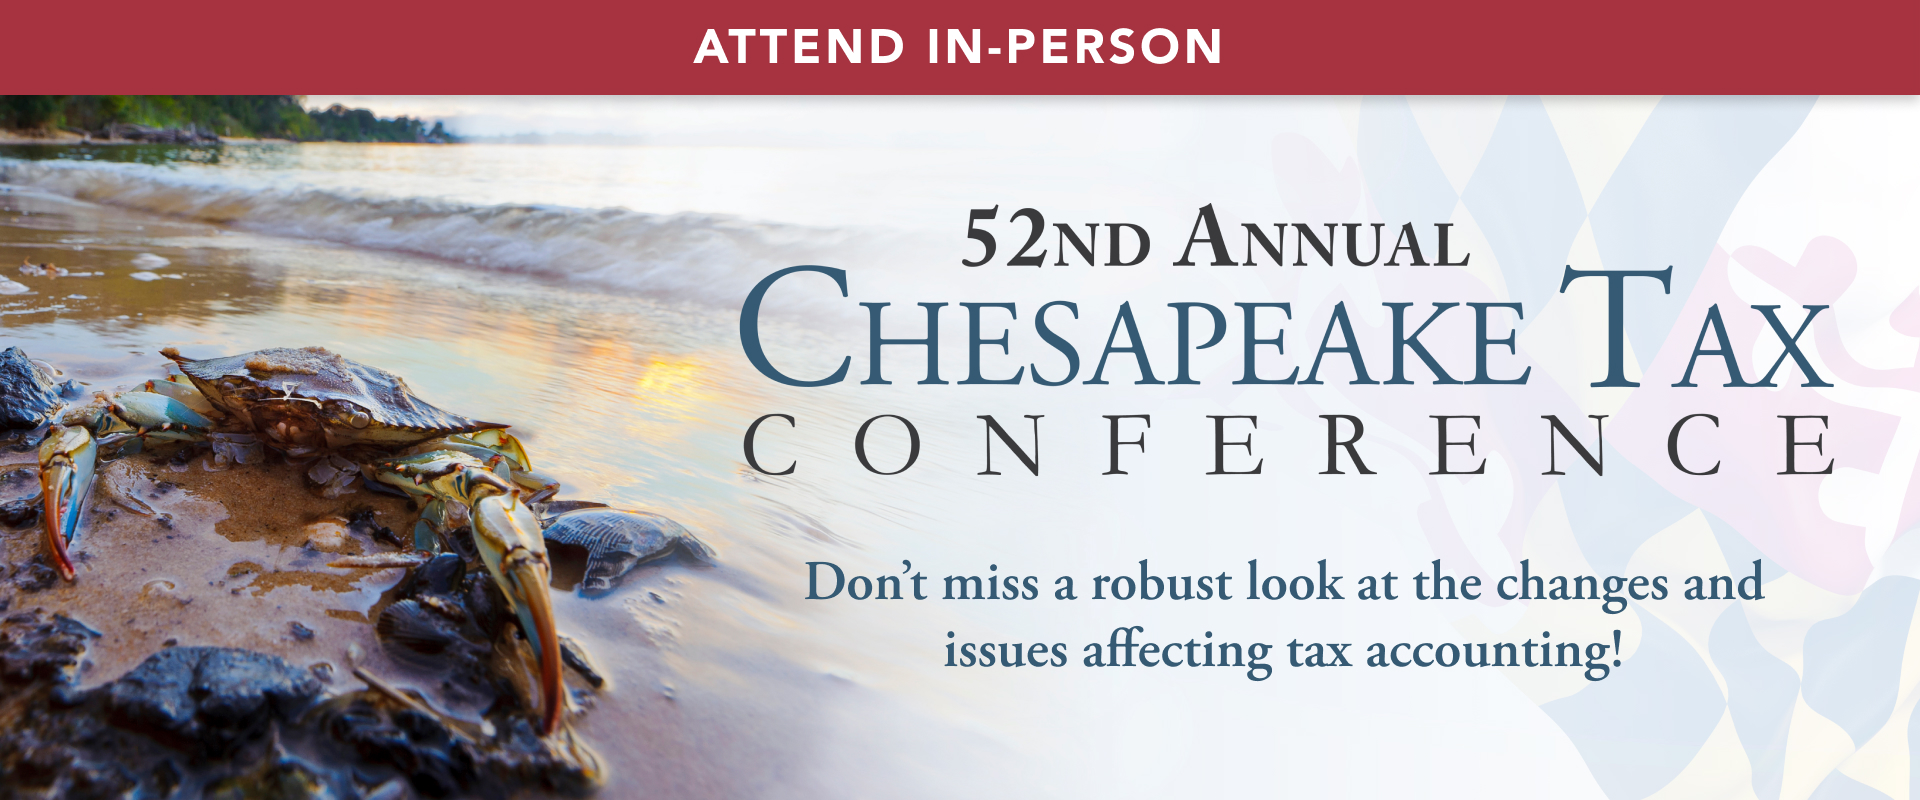 52nd CHESAPEAKE TAX CONFERENCE – (In Person)